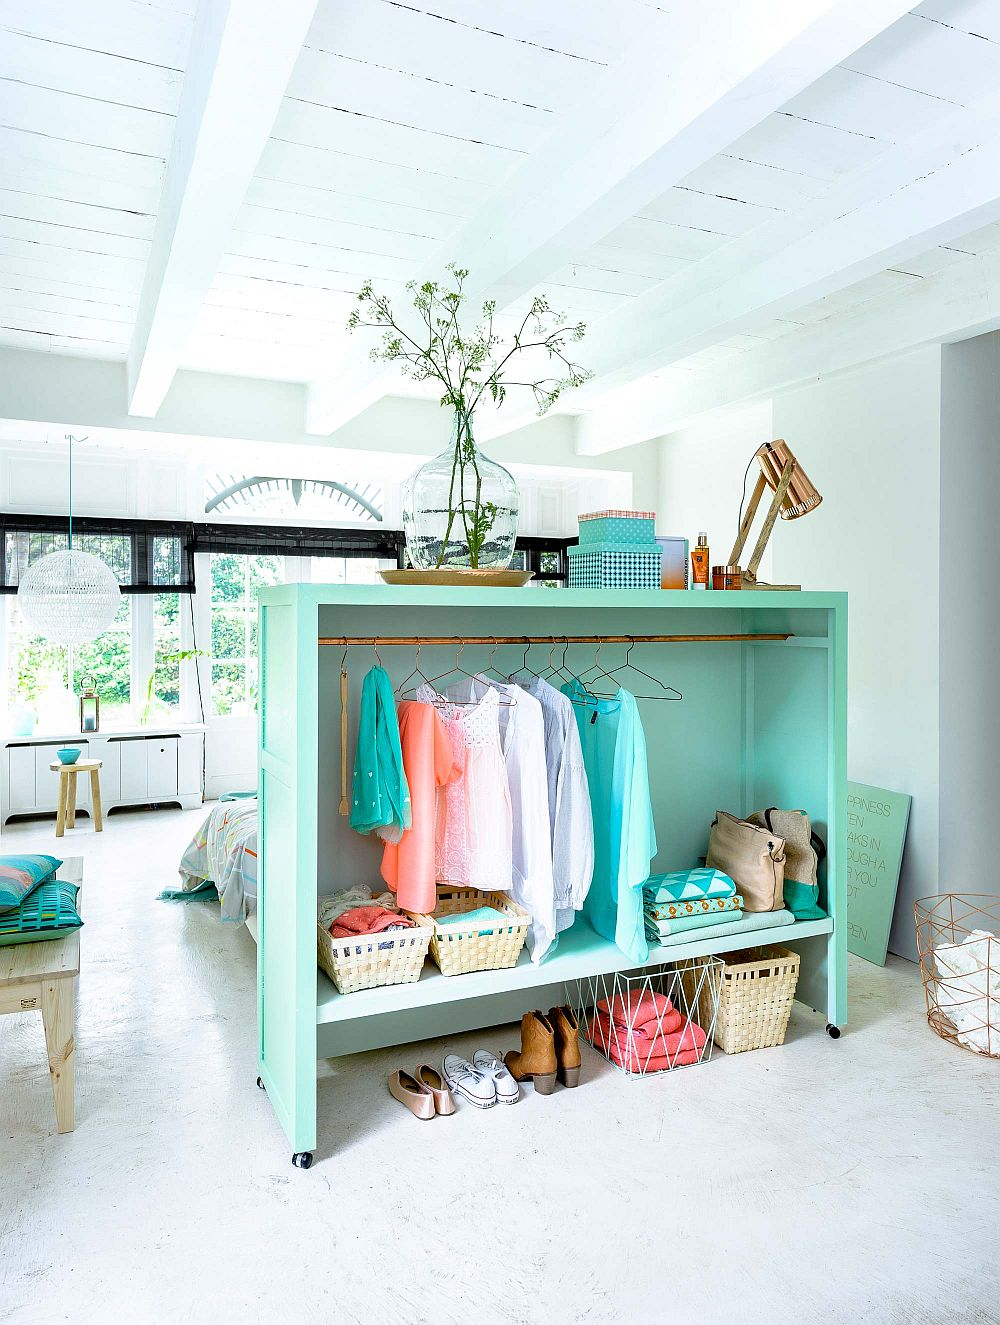 12 DIY Bedroom Storage and Décor Ideas that Bring Space-Savvy Style